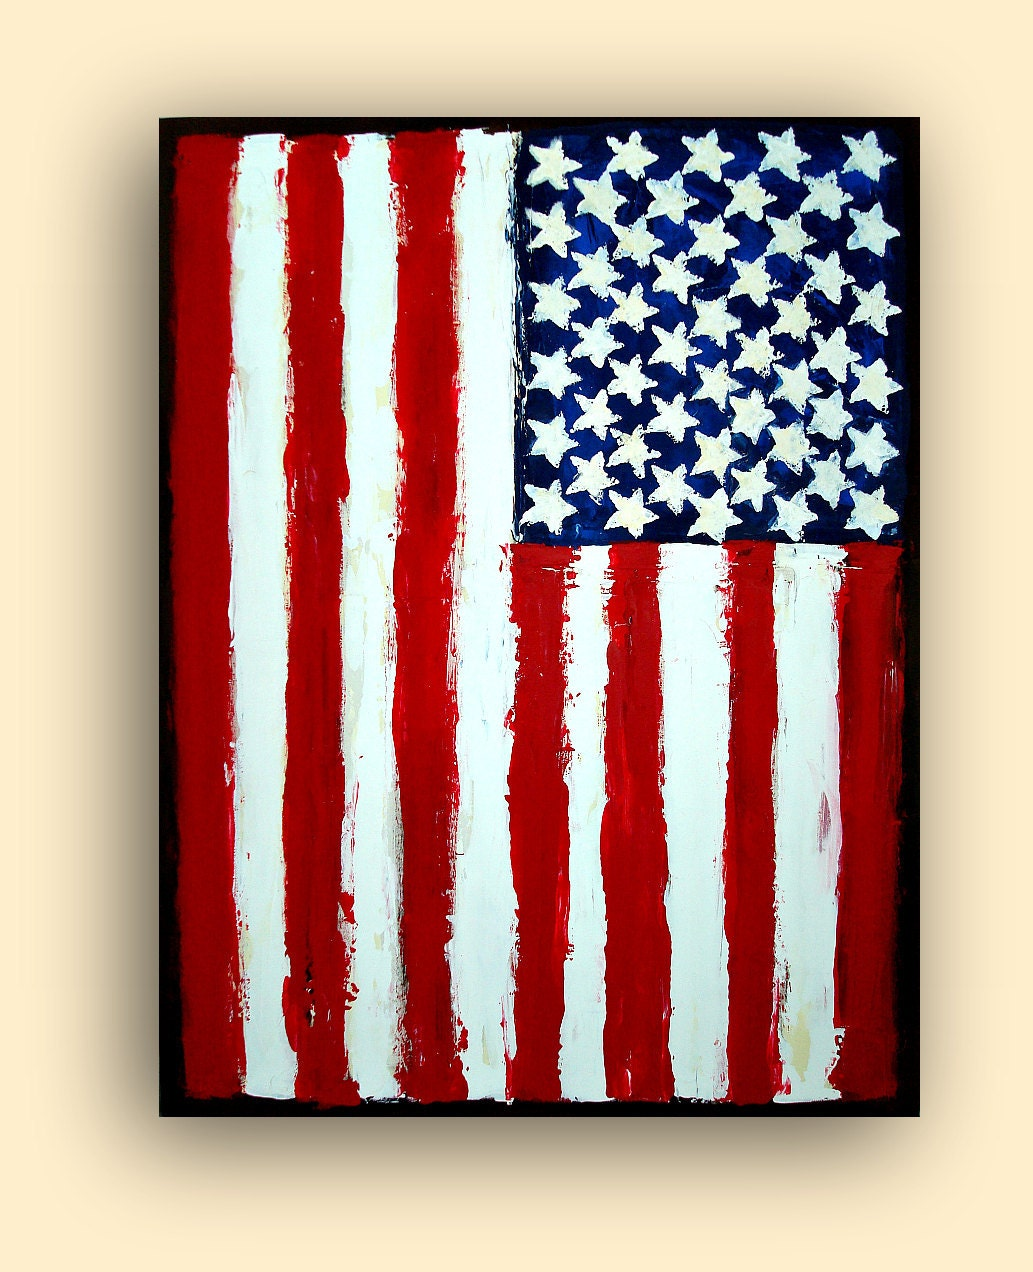 "ORIGINAL American Flag Acrylic Abstract Painting Titled: FREEDOM 30x40x1.5"" by Ora Birenbaum - orabirenbaum"